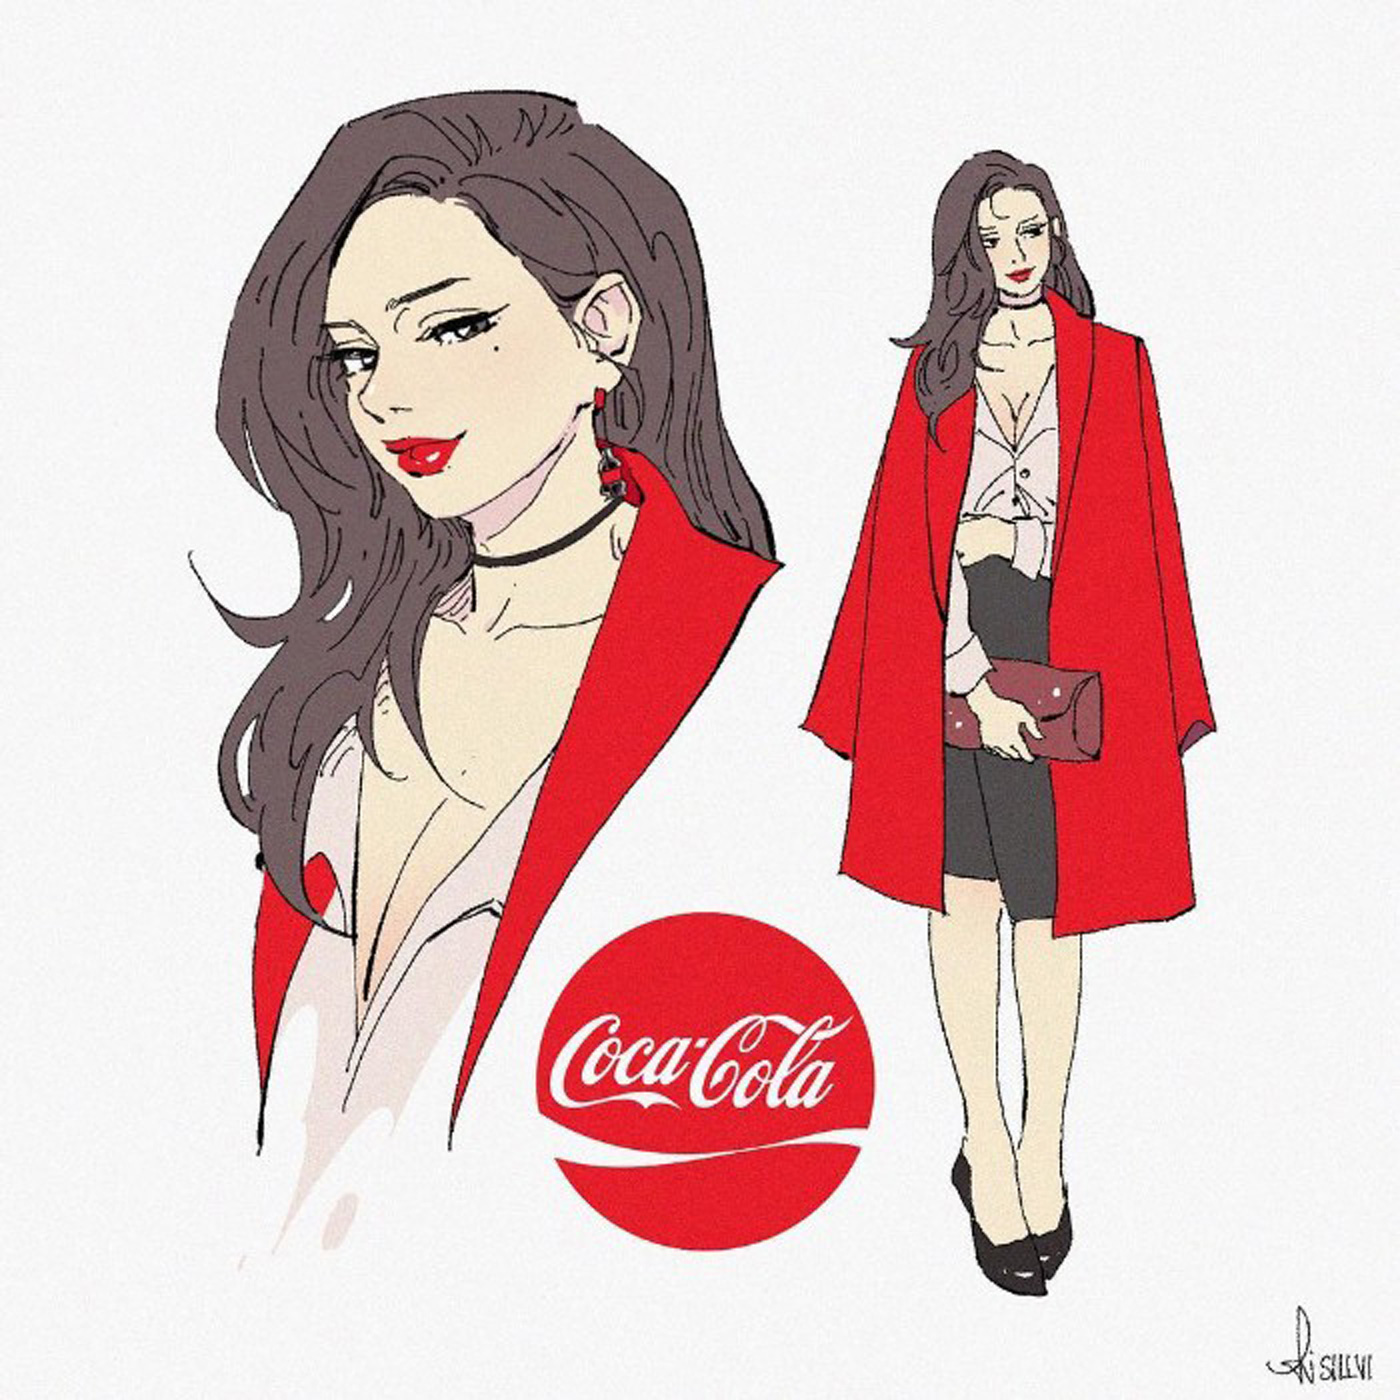 Illustrations of coca-cola brand soft drinks soda with female characters